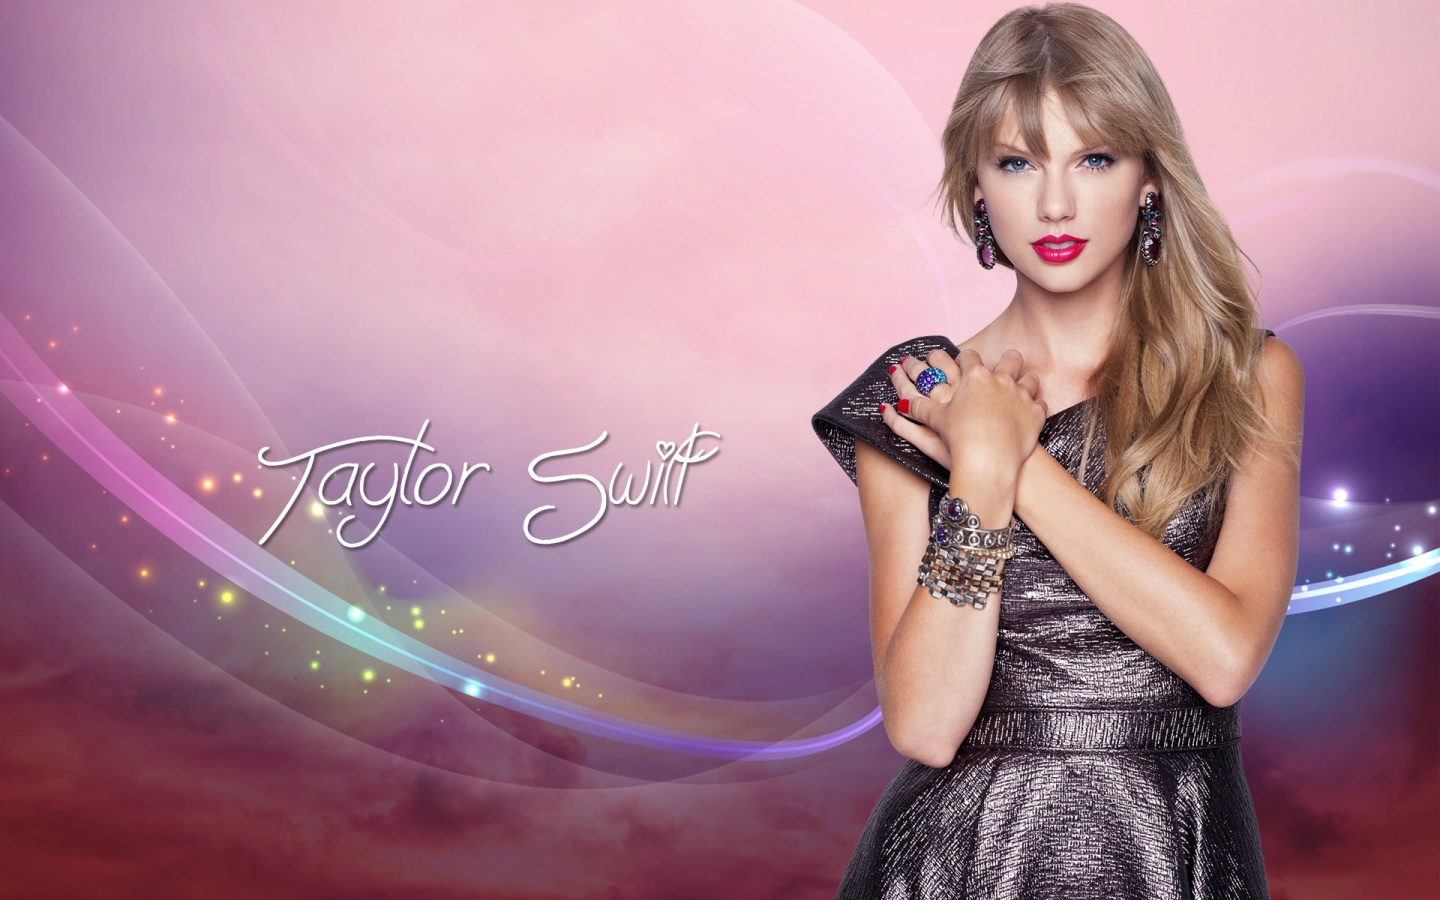 Taylor Swift Hd Wallpapers Oi Det